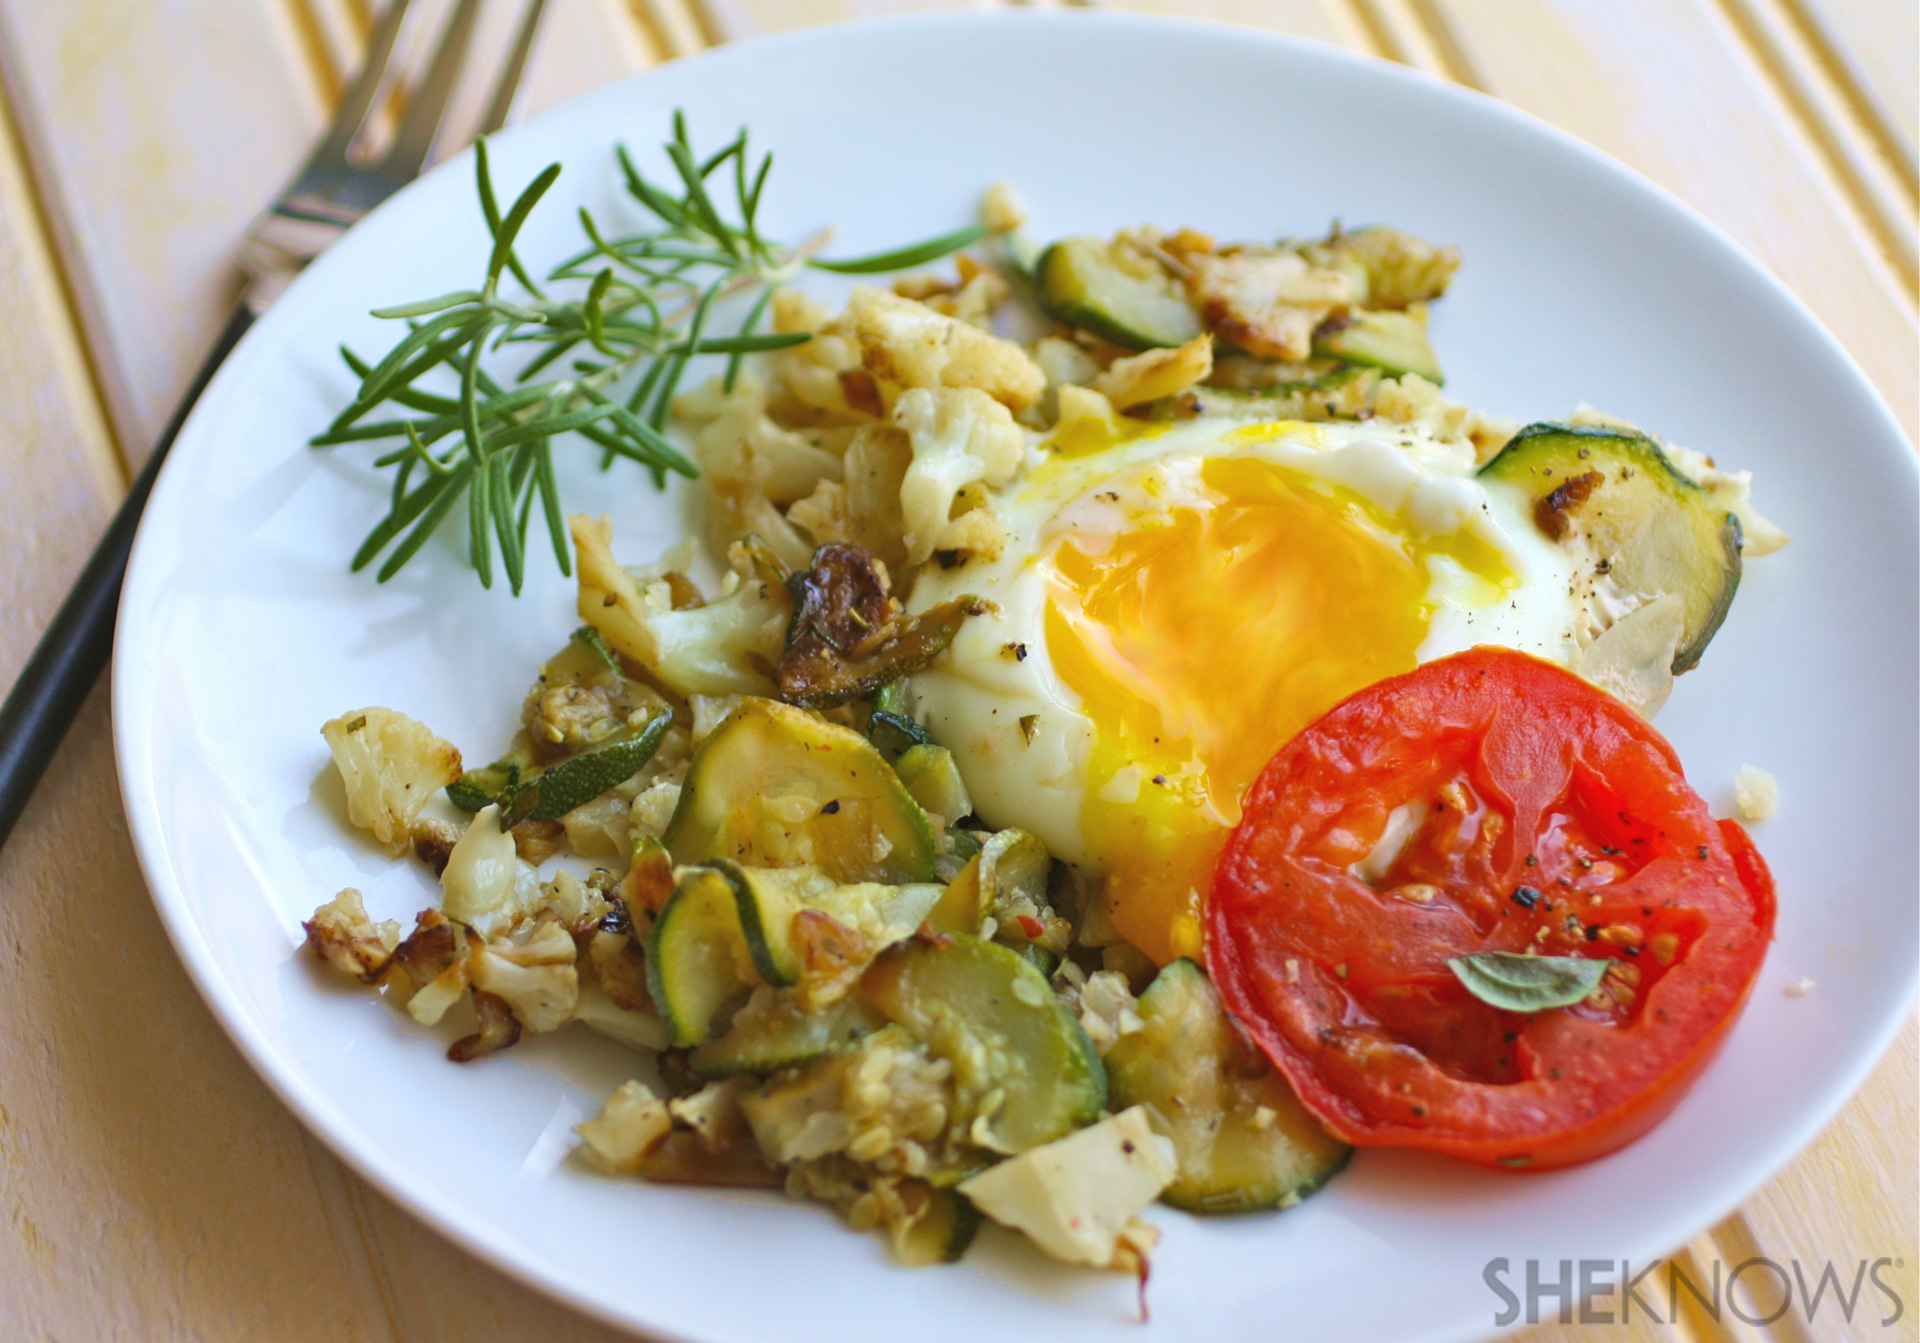 Skillet cauliflower and zucchini hash with eggs